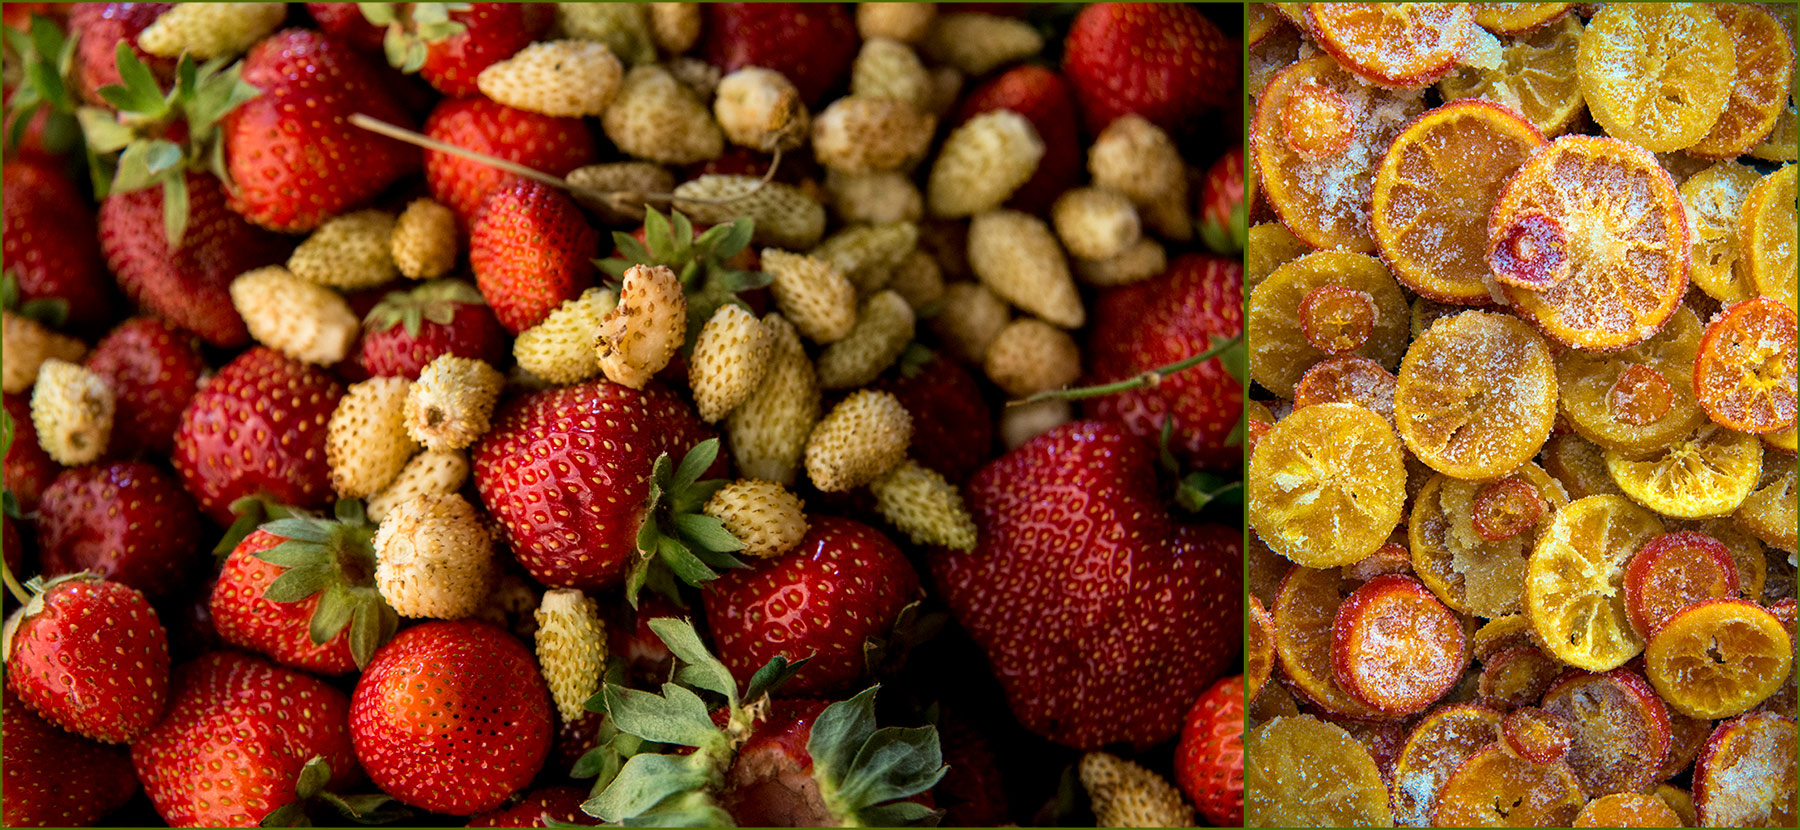 Strawberries-candied-oranges-Carl-Kravats-Photography